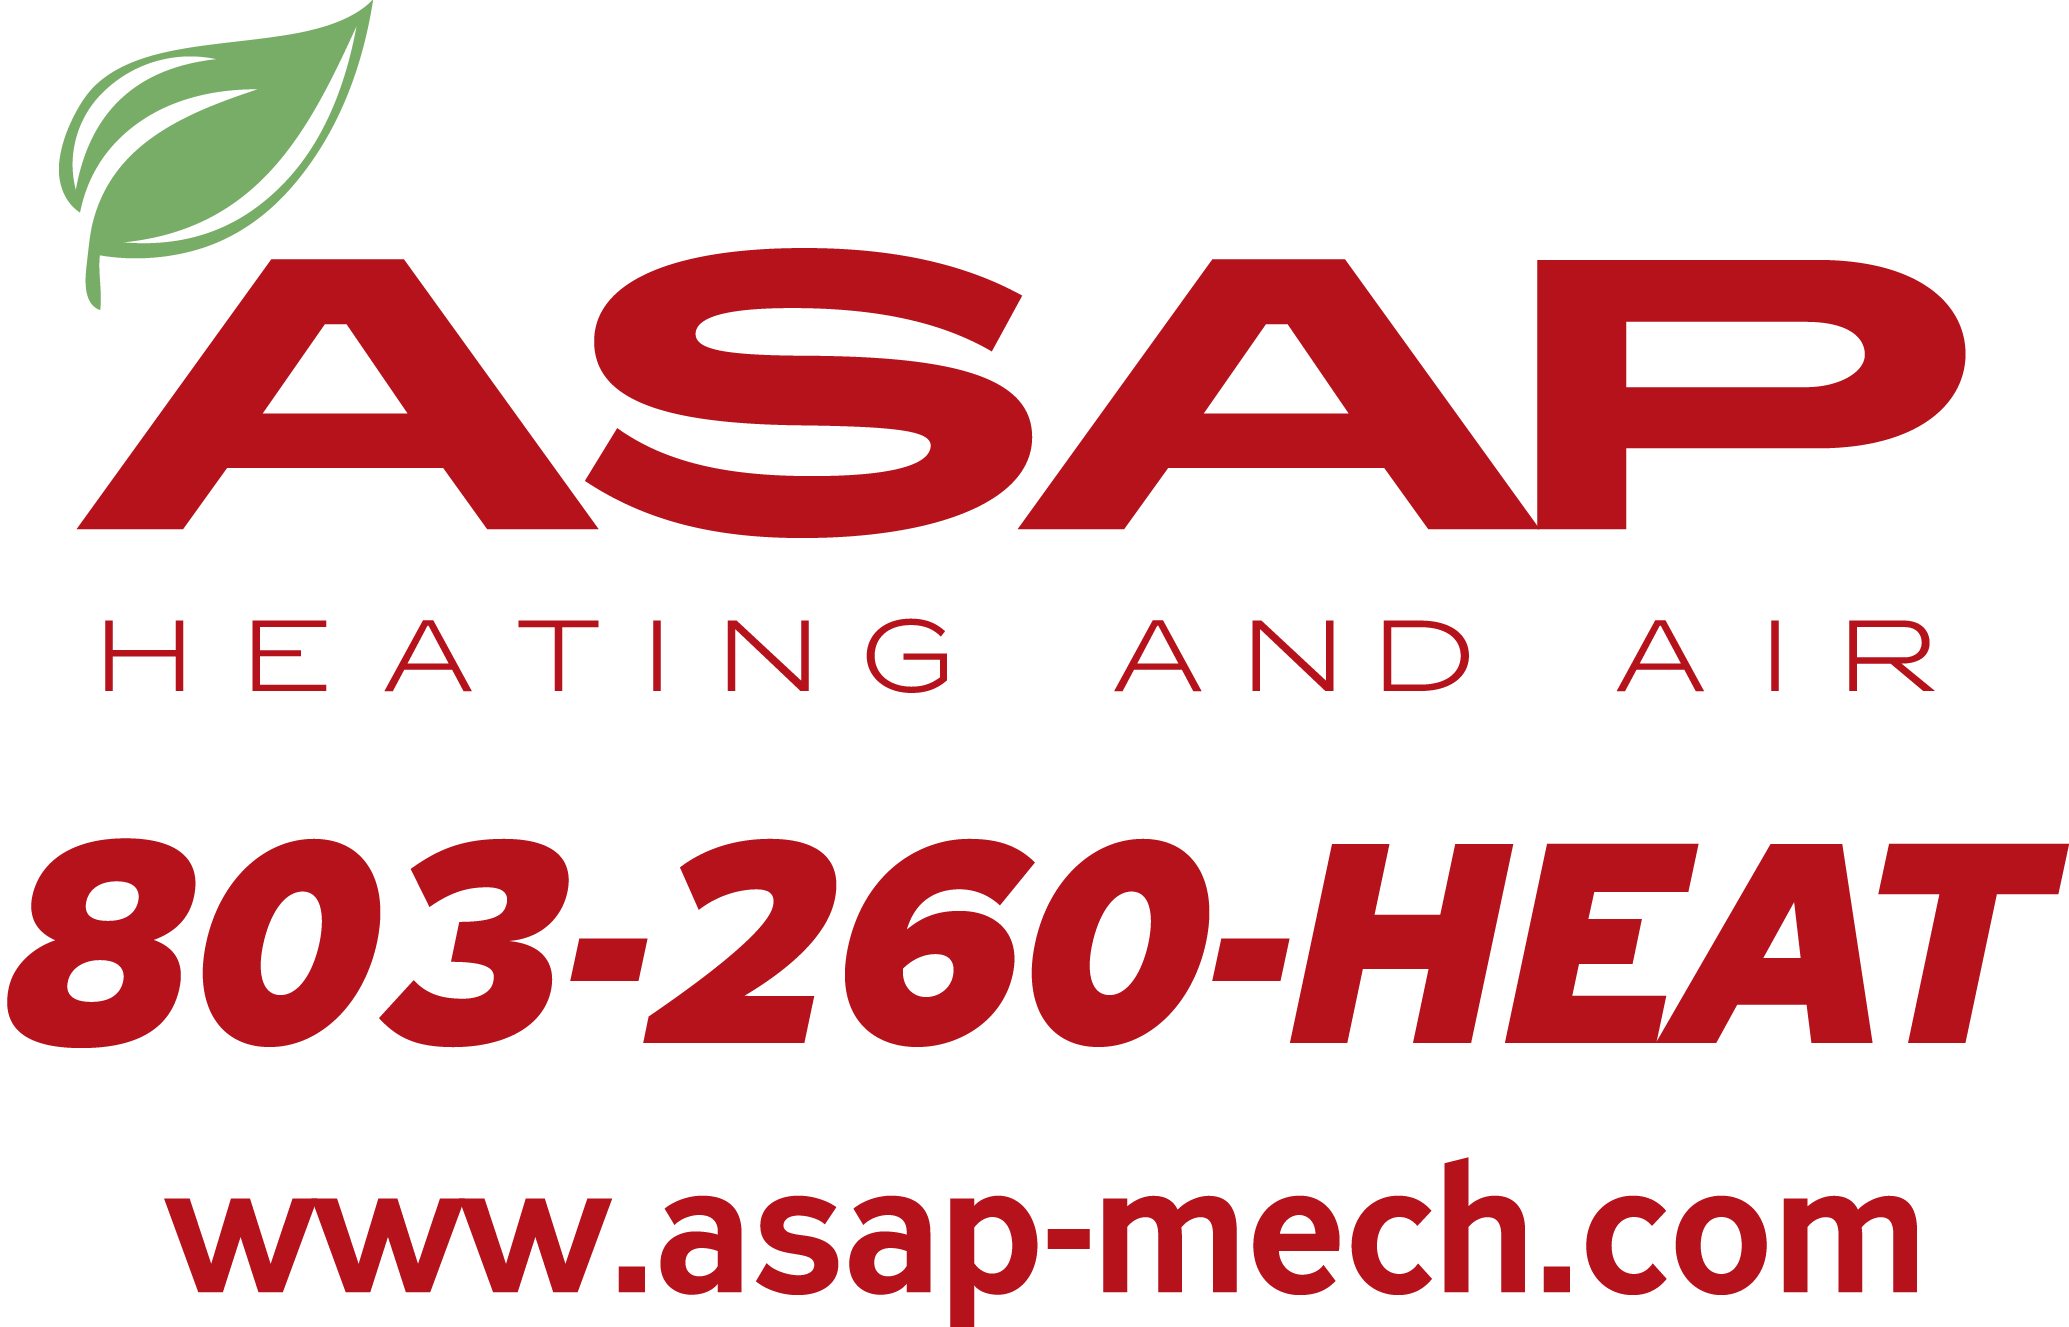 ASAP Heating and Air Acquires GreenHome Solutions